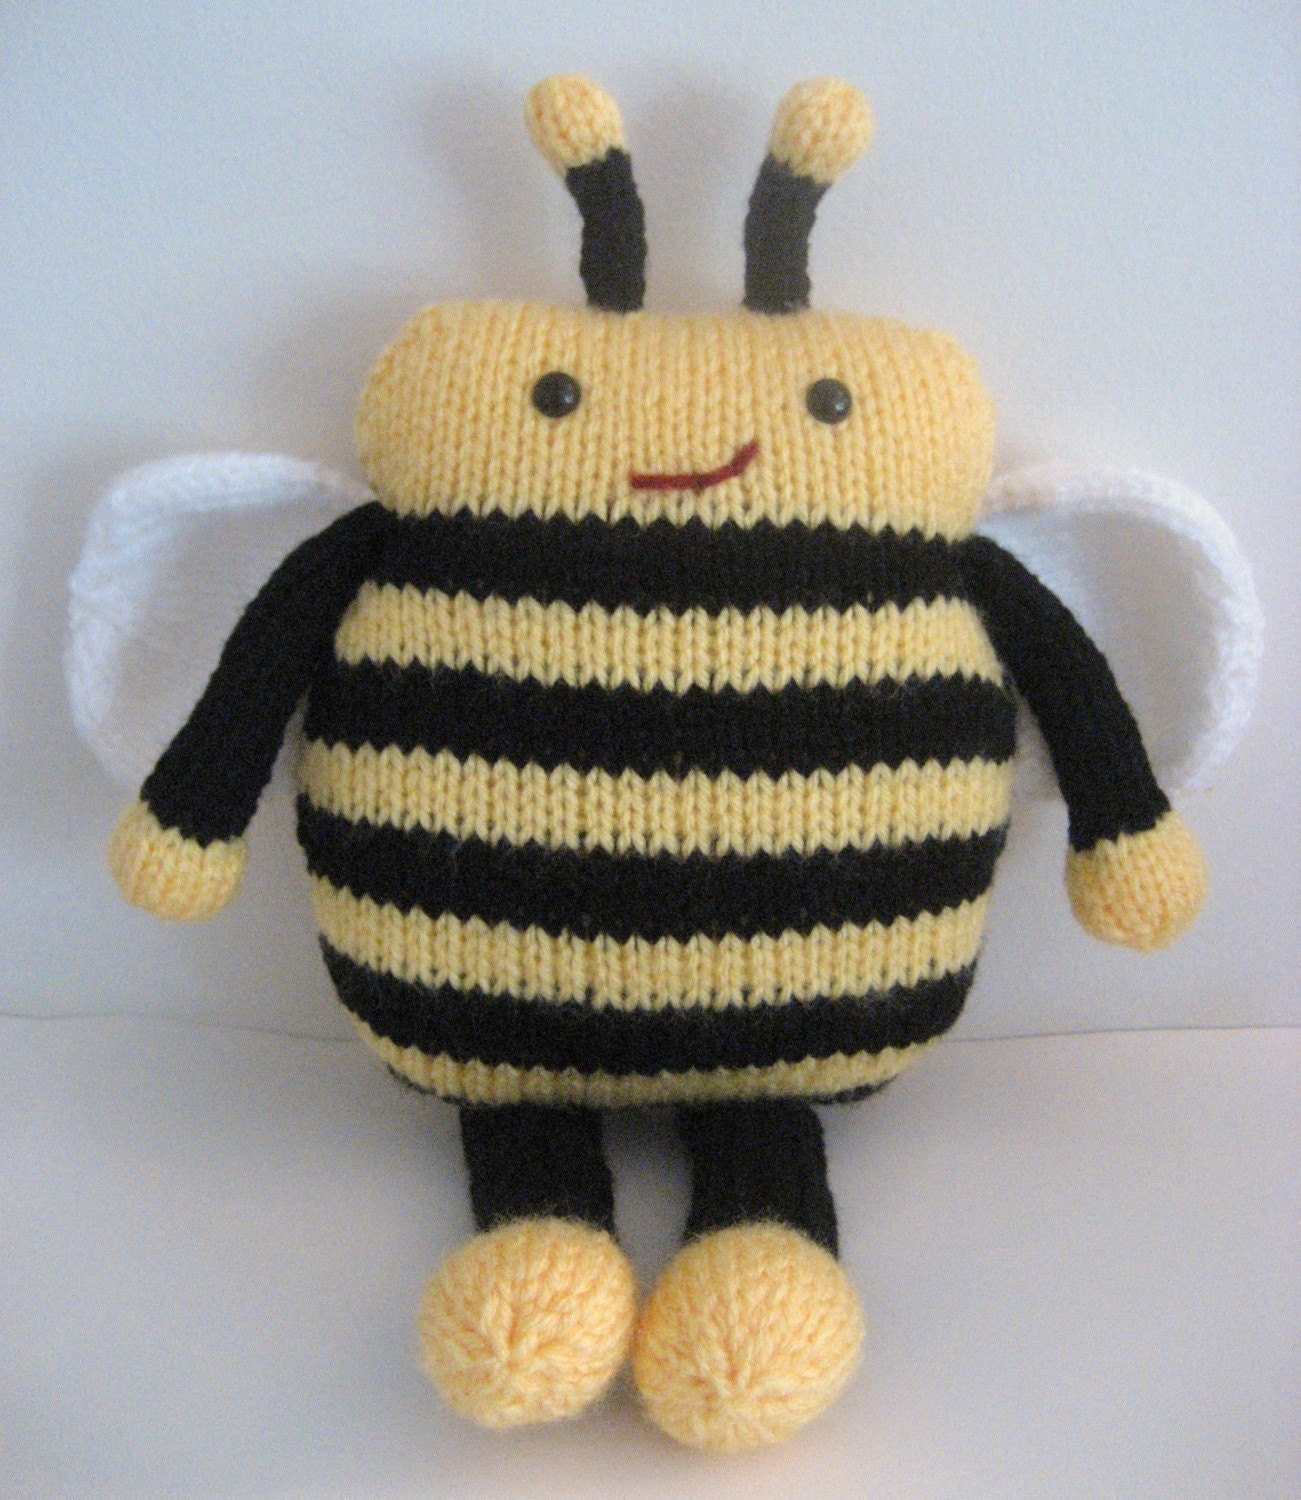 Easy Amigurumi Cat Pattern : Sale Amigurumi Knit Bee Pattern Digital Download